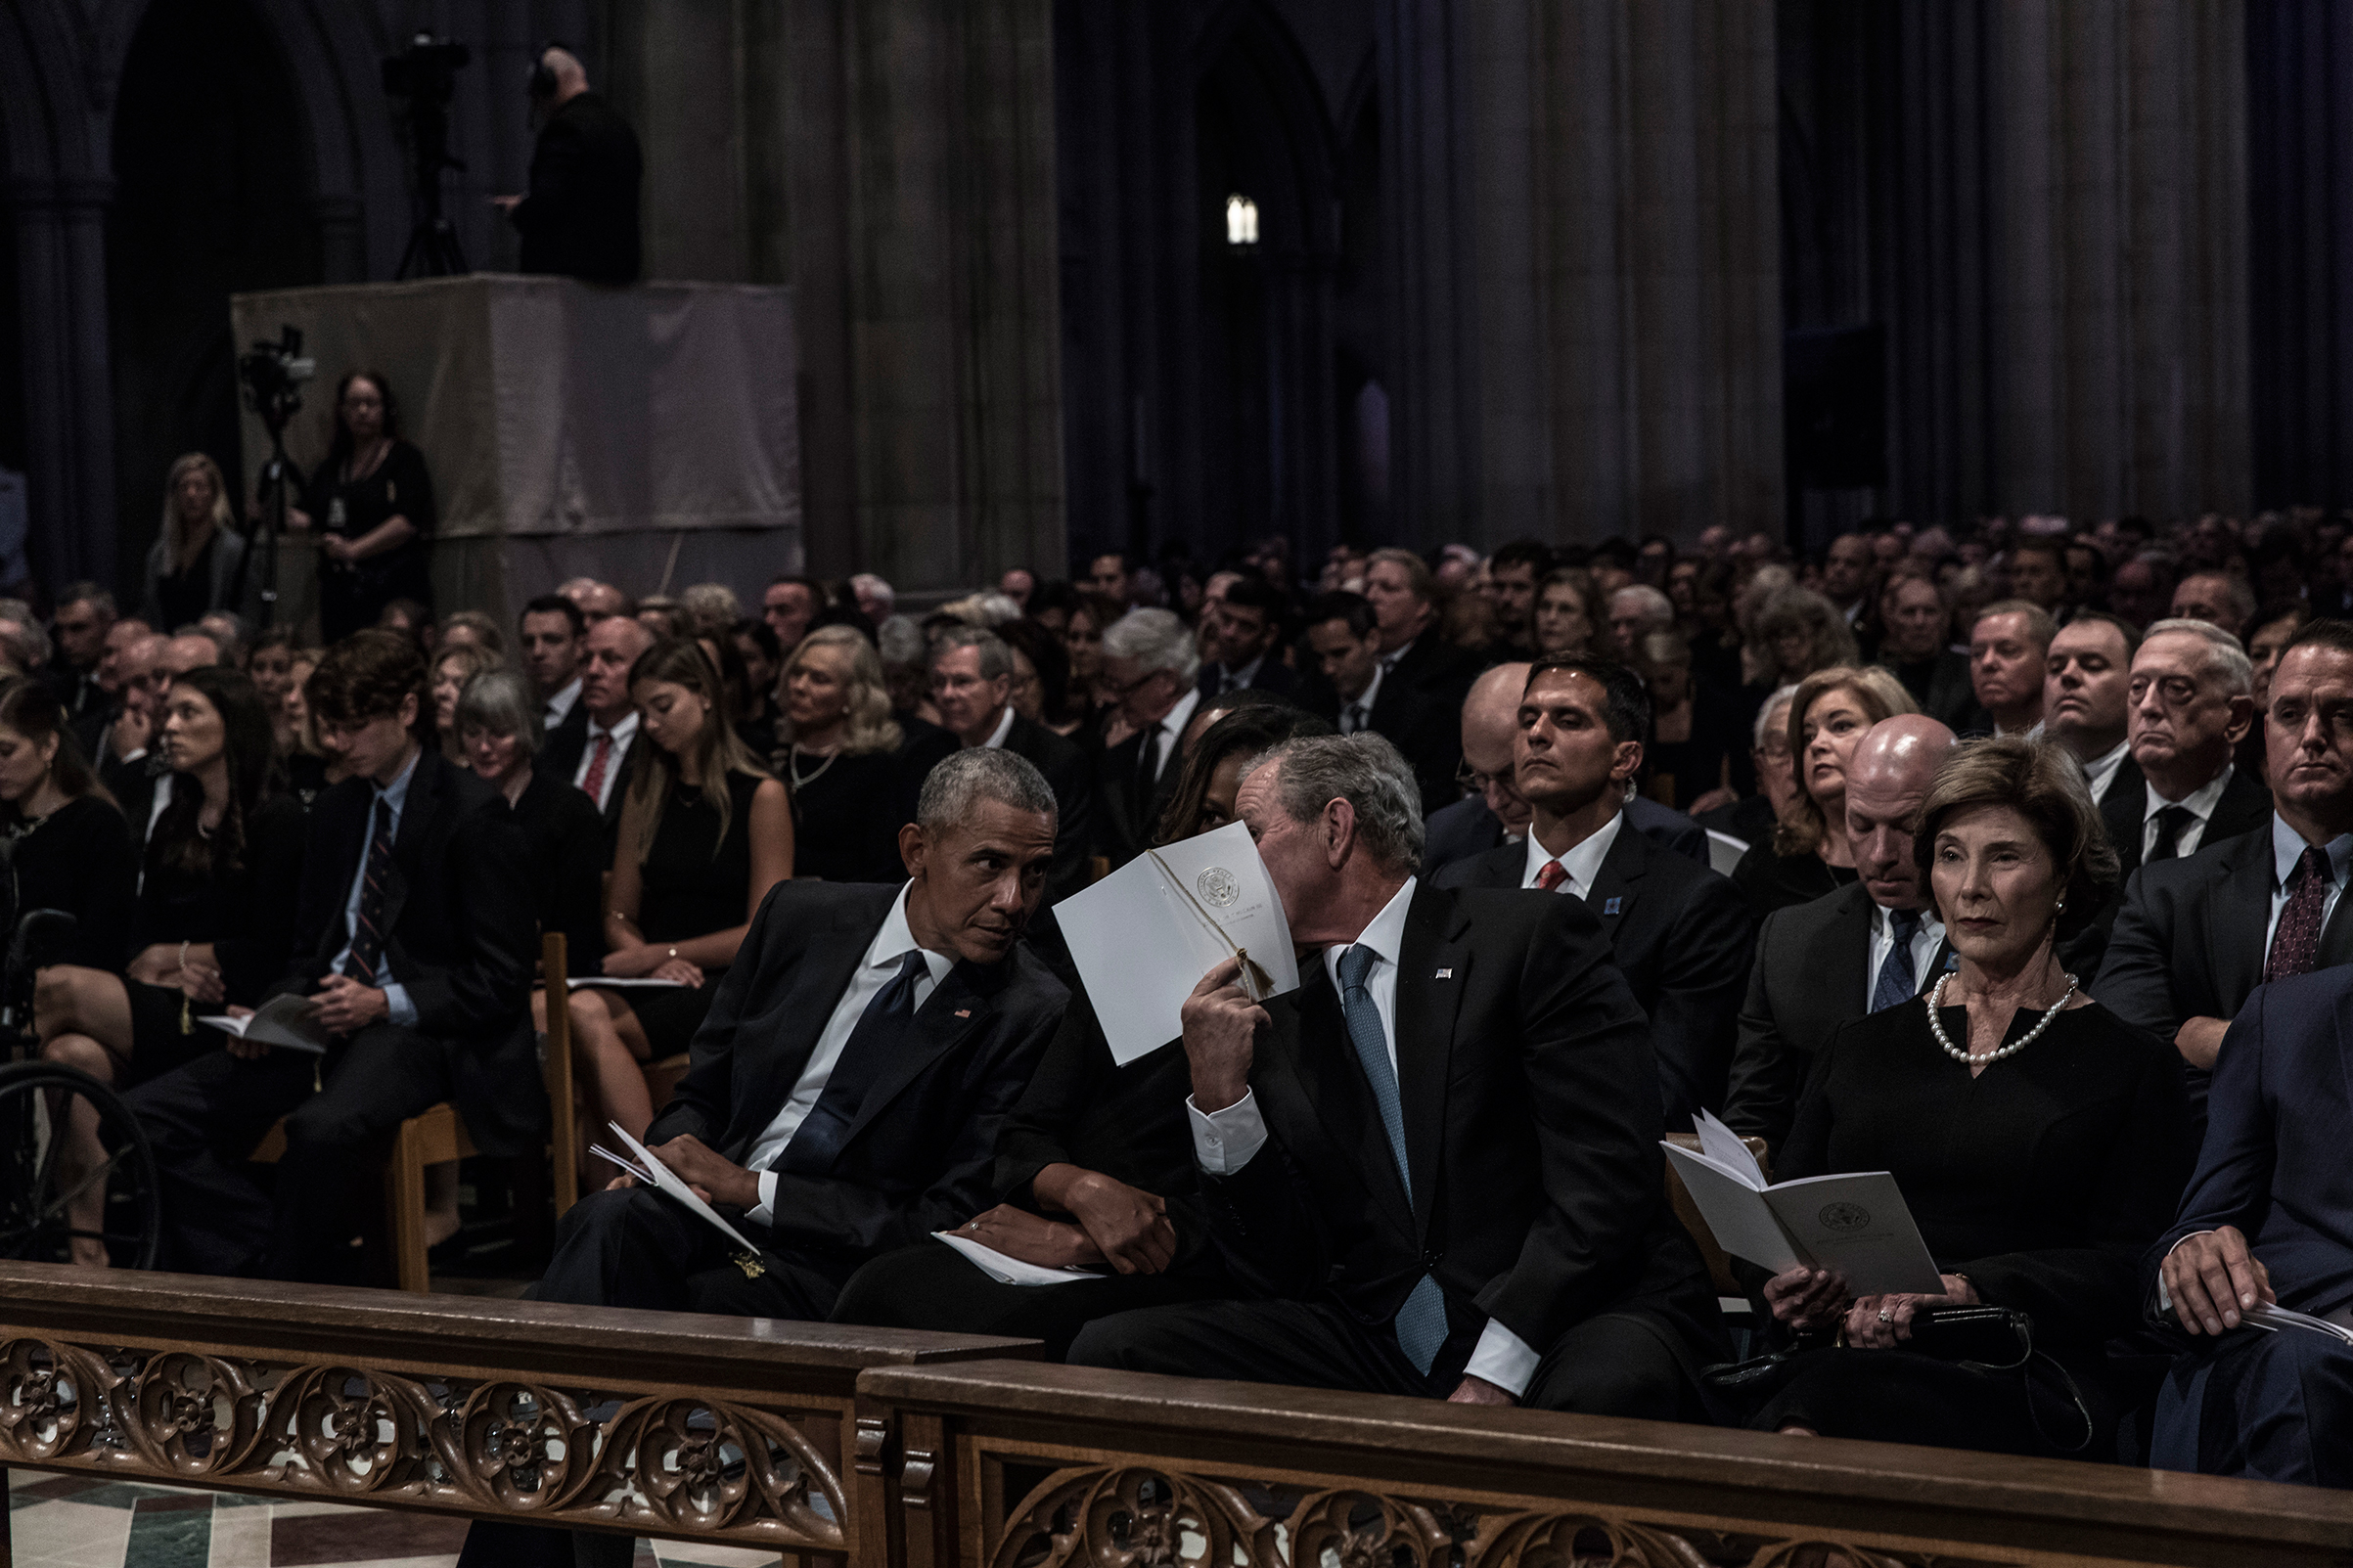 Former US President Barack Obama, Michelle Obama, former President George W. Bush and Laura Bush during a memorial service for Senator John McCain at the Washington National Cathedral on September 1, 2018.